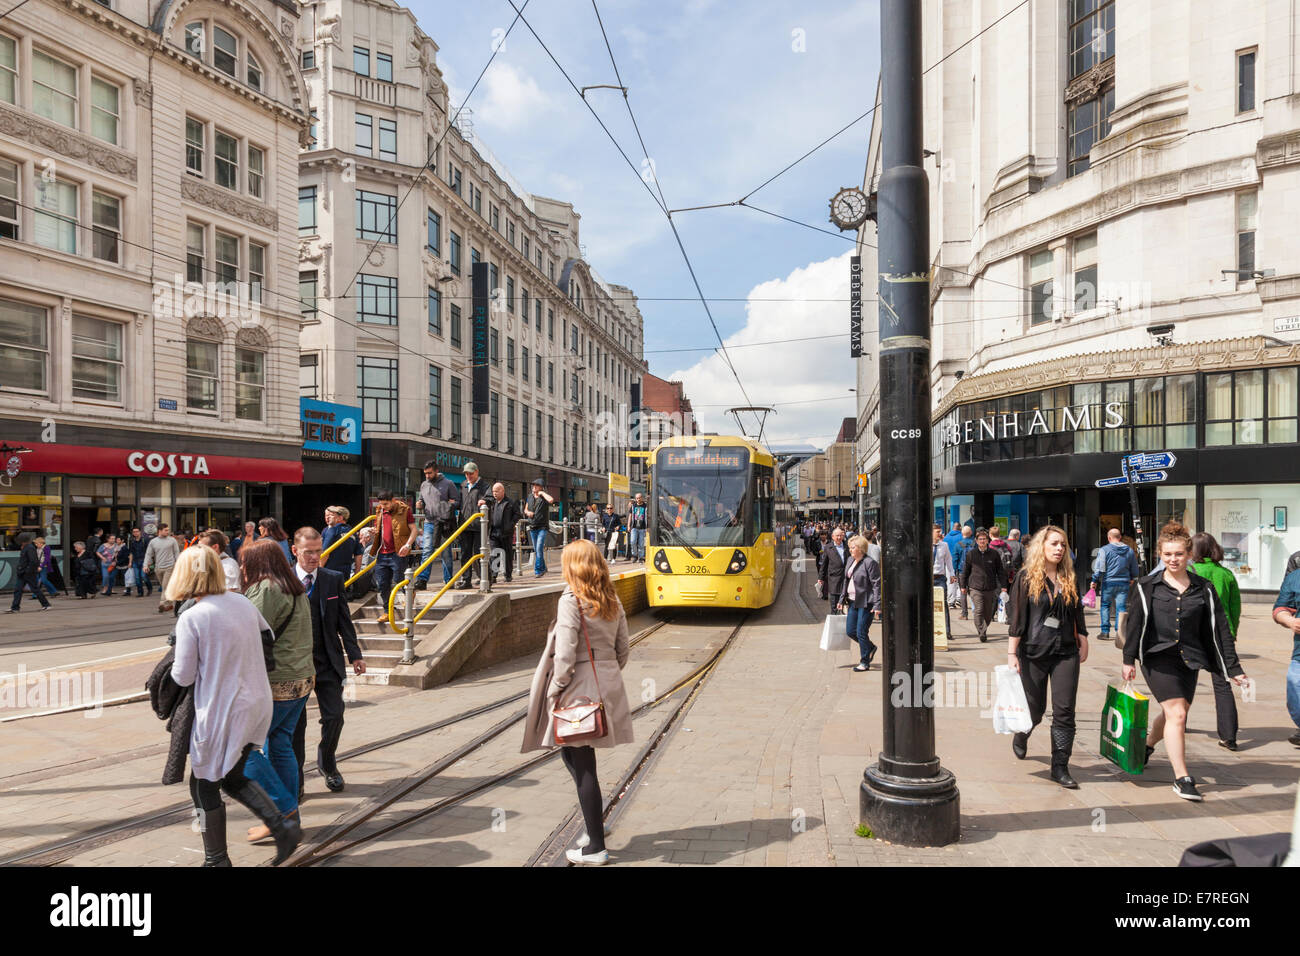 People shopping and a Metrolink tram on the busy Market Street in Manchester city centre, England, UK - Stock Image